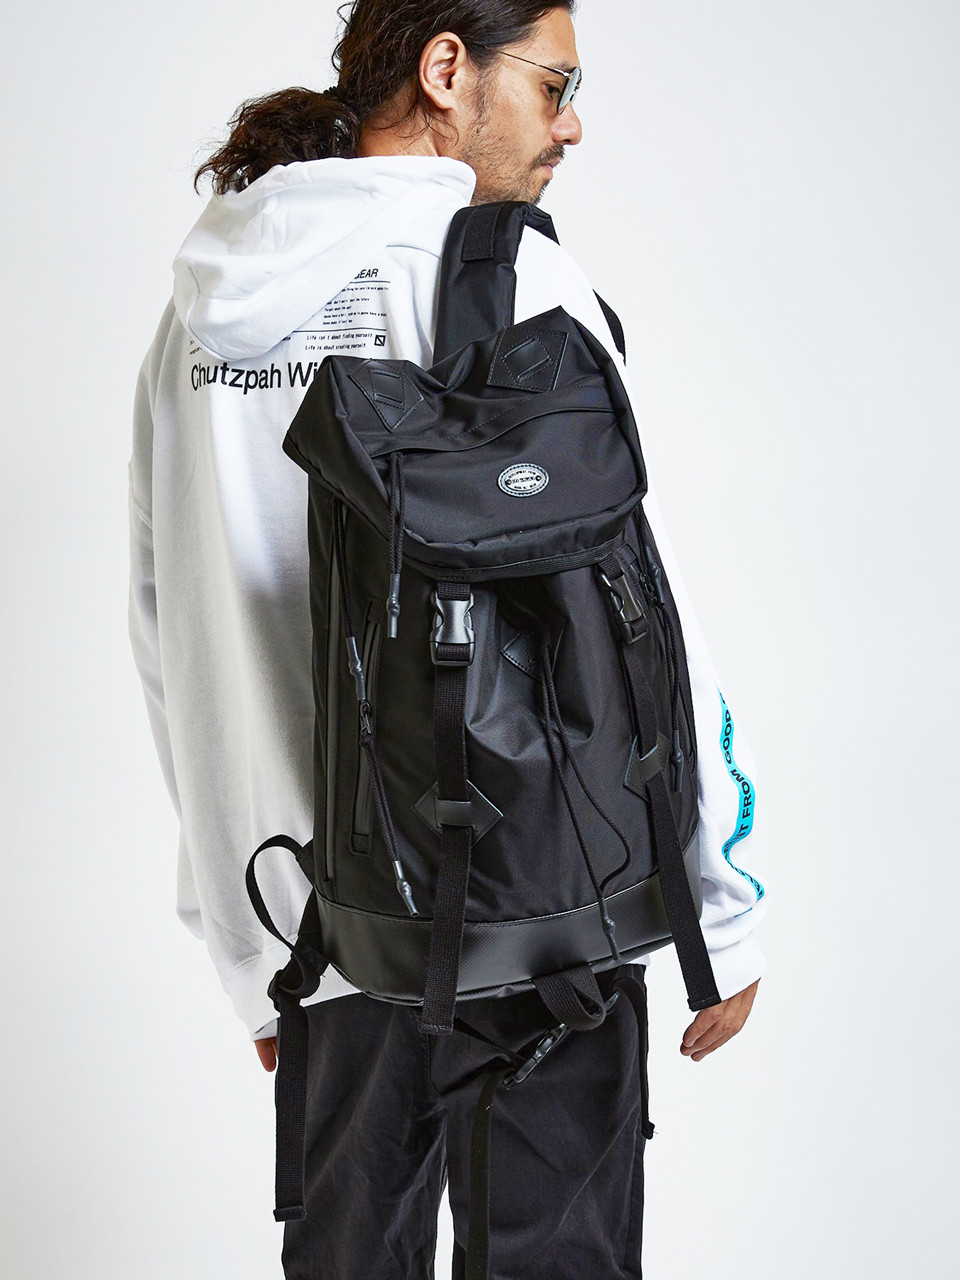 EGO TRIPPING×PROPA9ANDA | FALCON BACKPACK